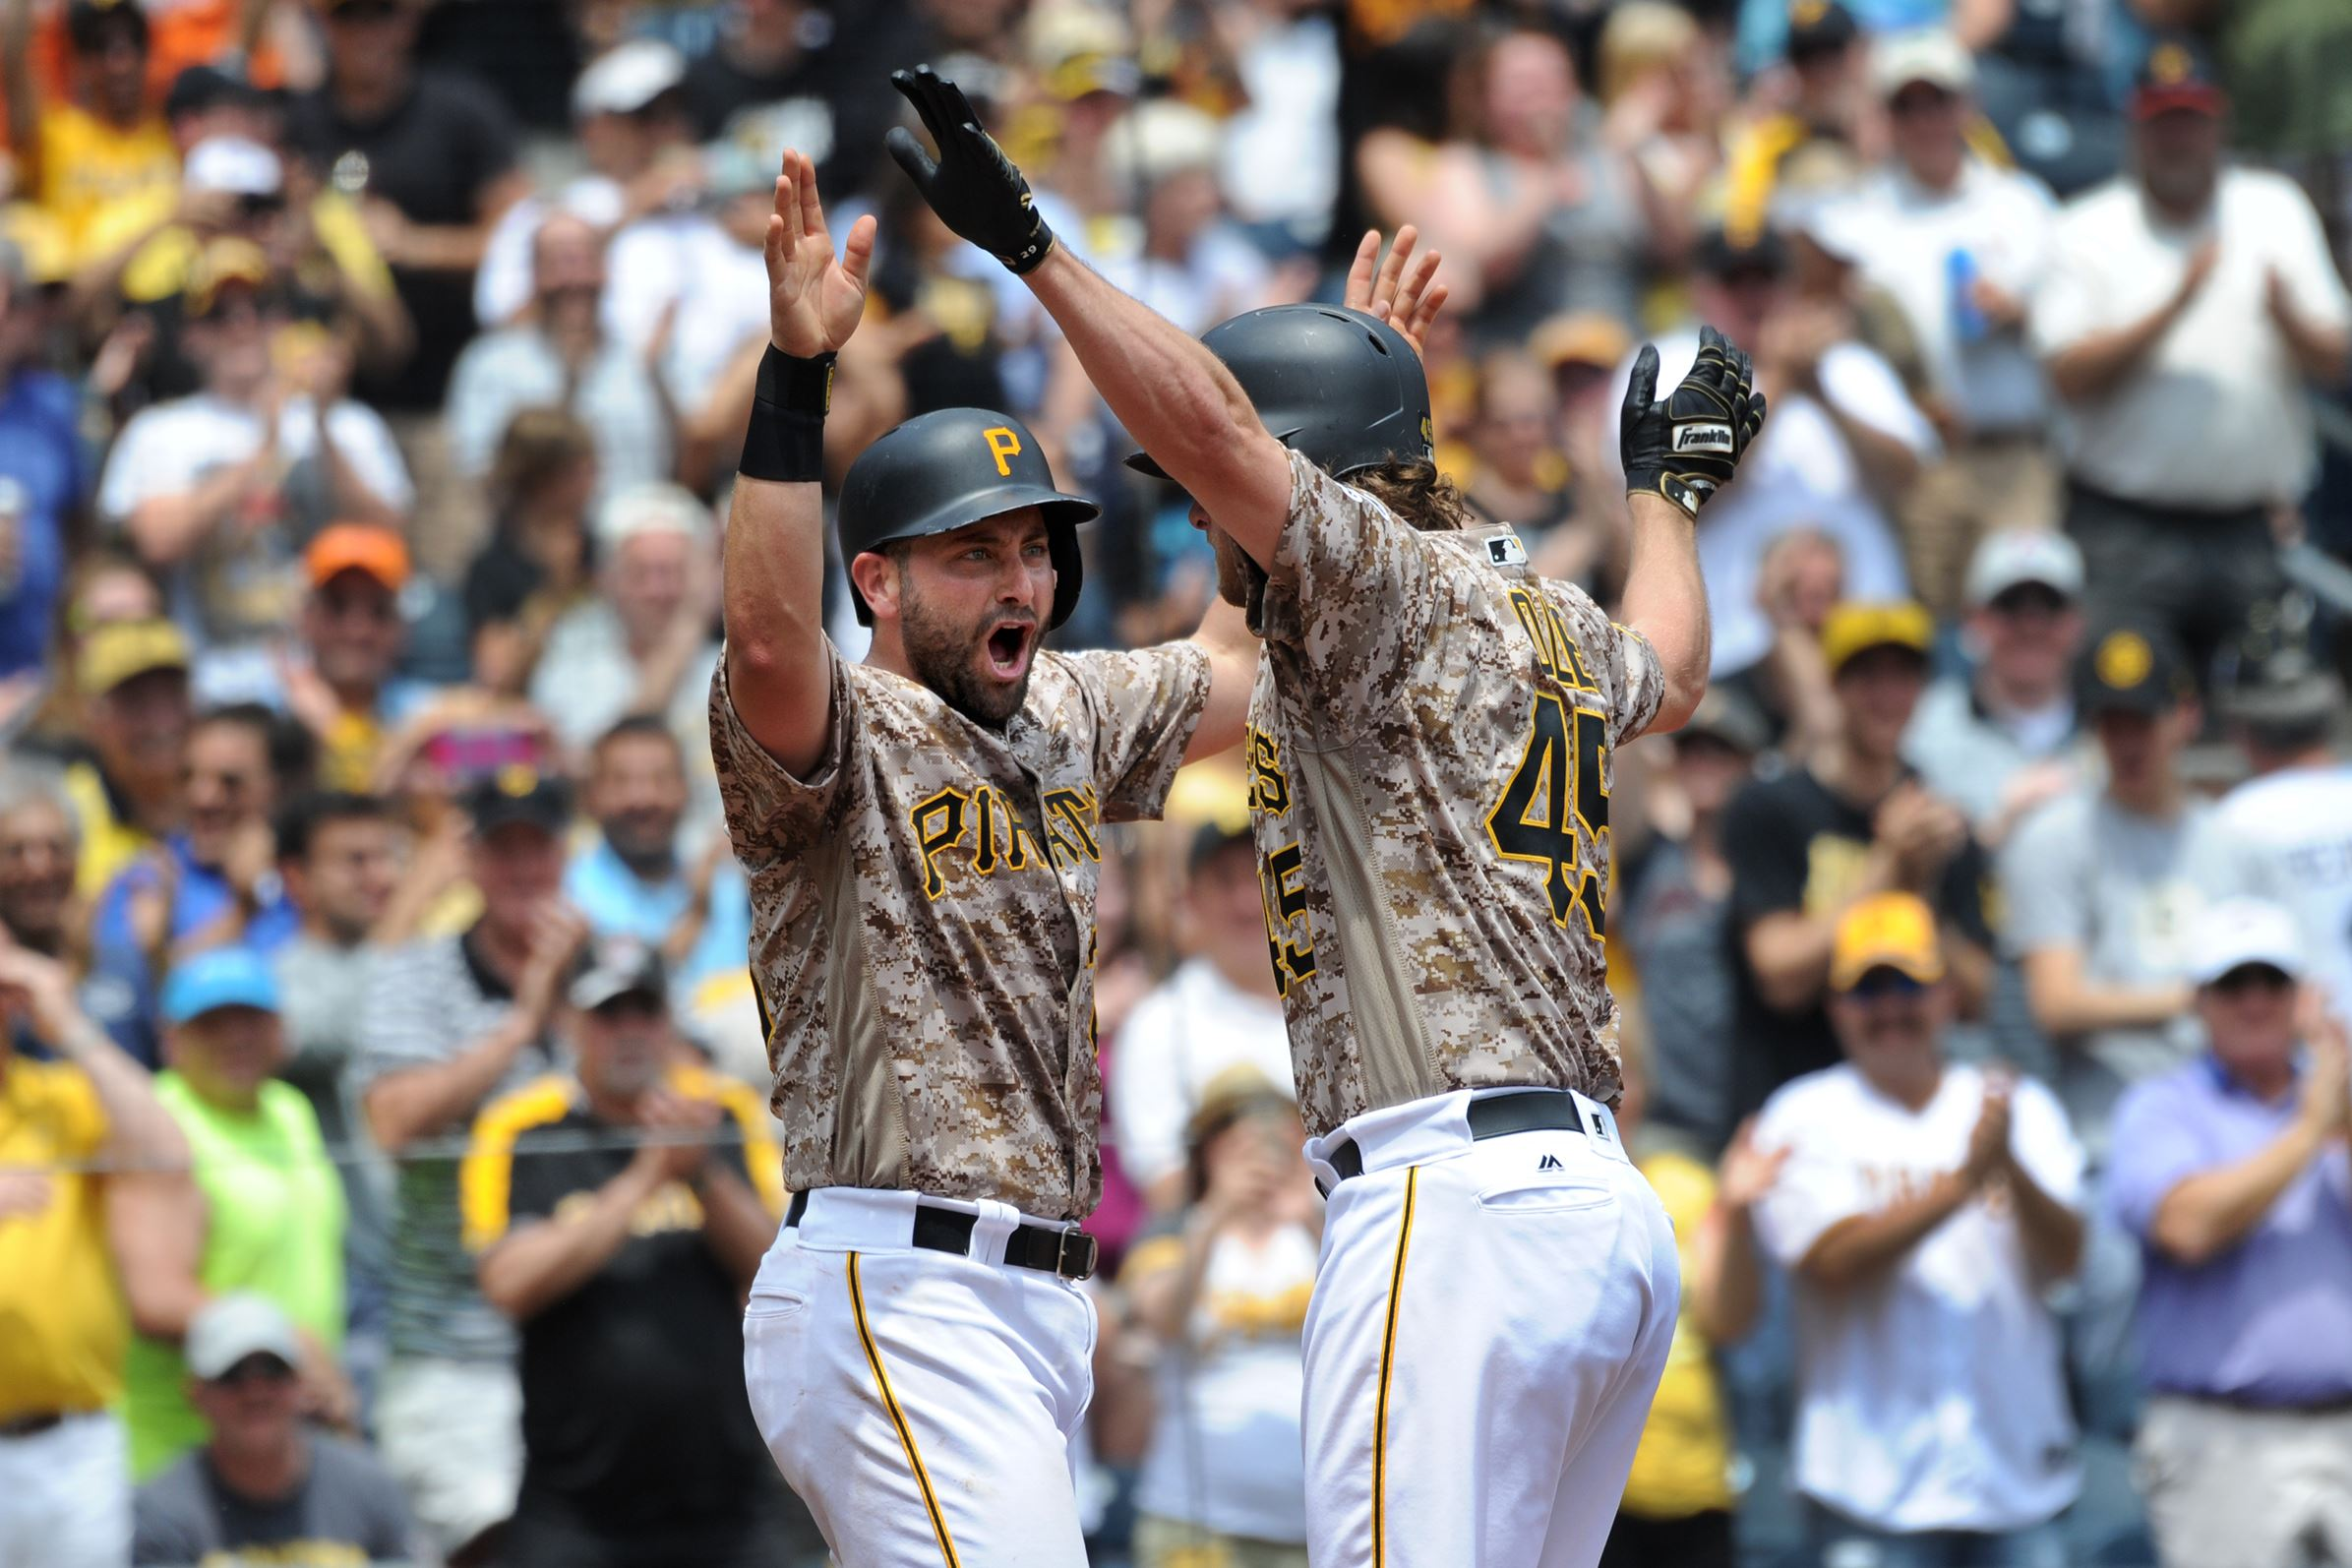 Pirates notebook: As pain subsides, Cervelli rejoins team